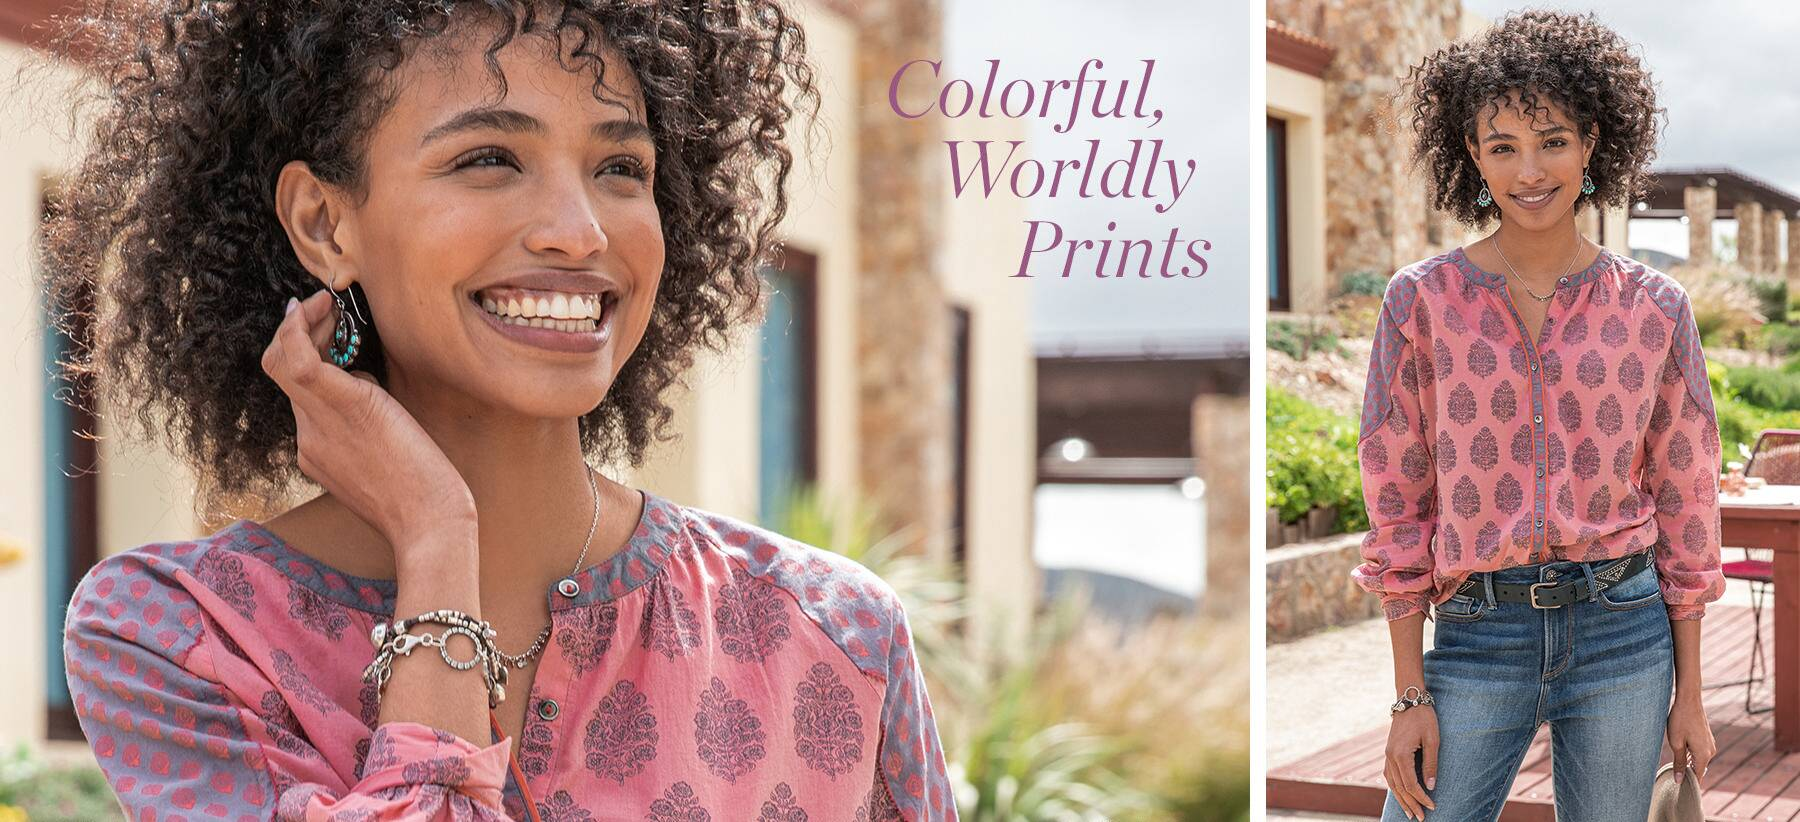 Colorful, Worldly Prints